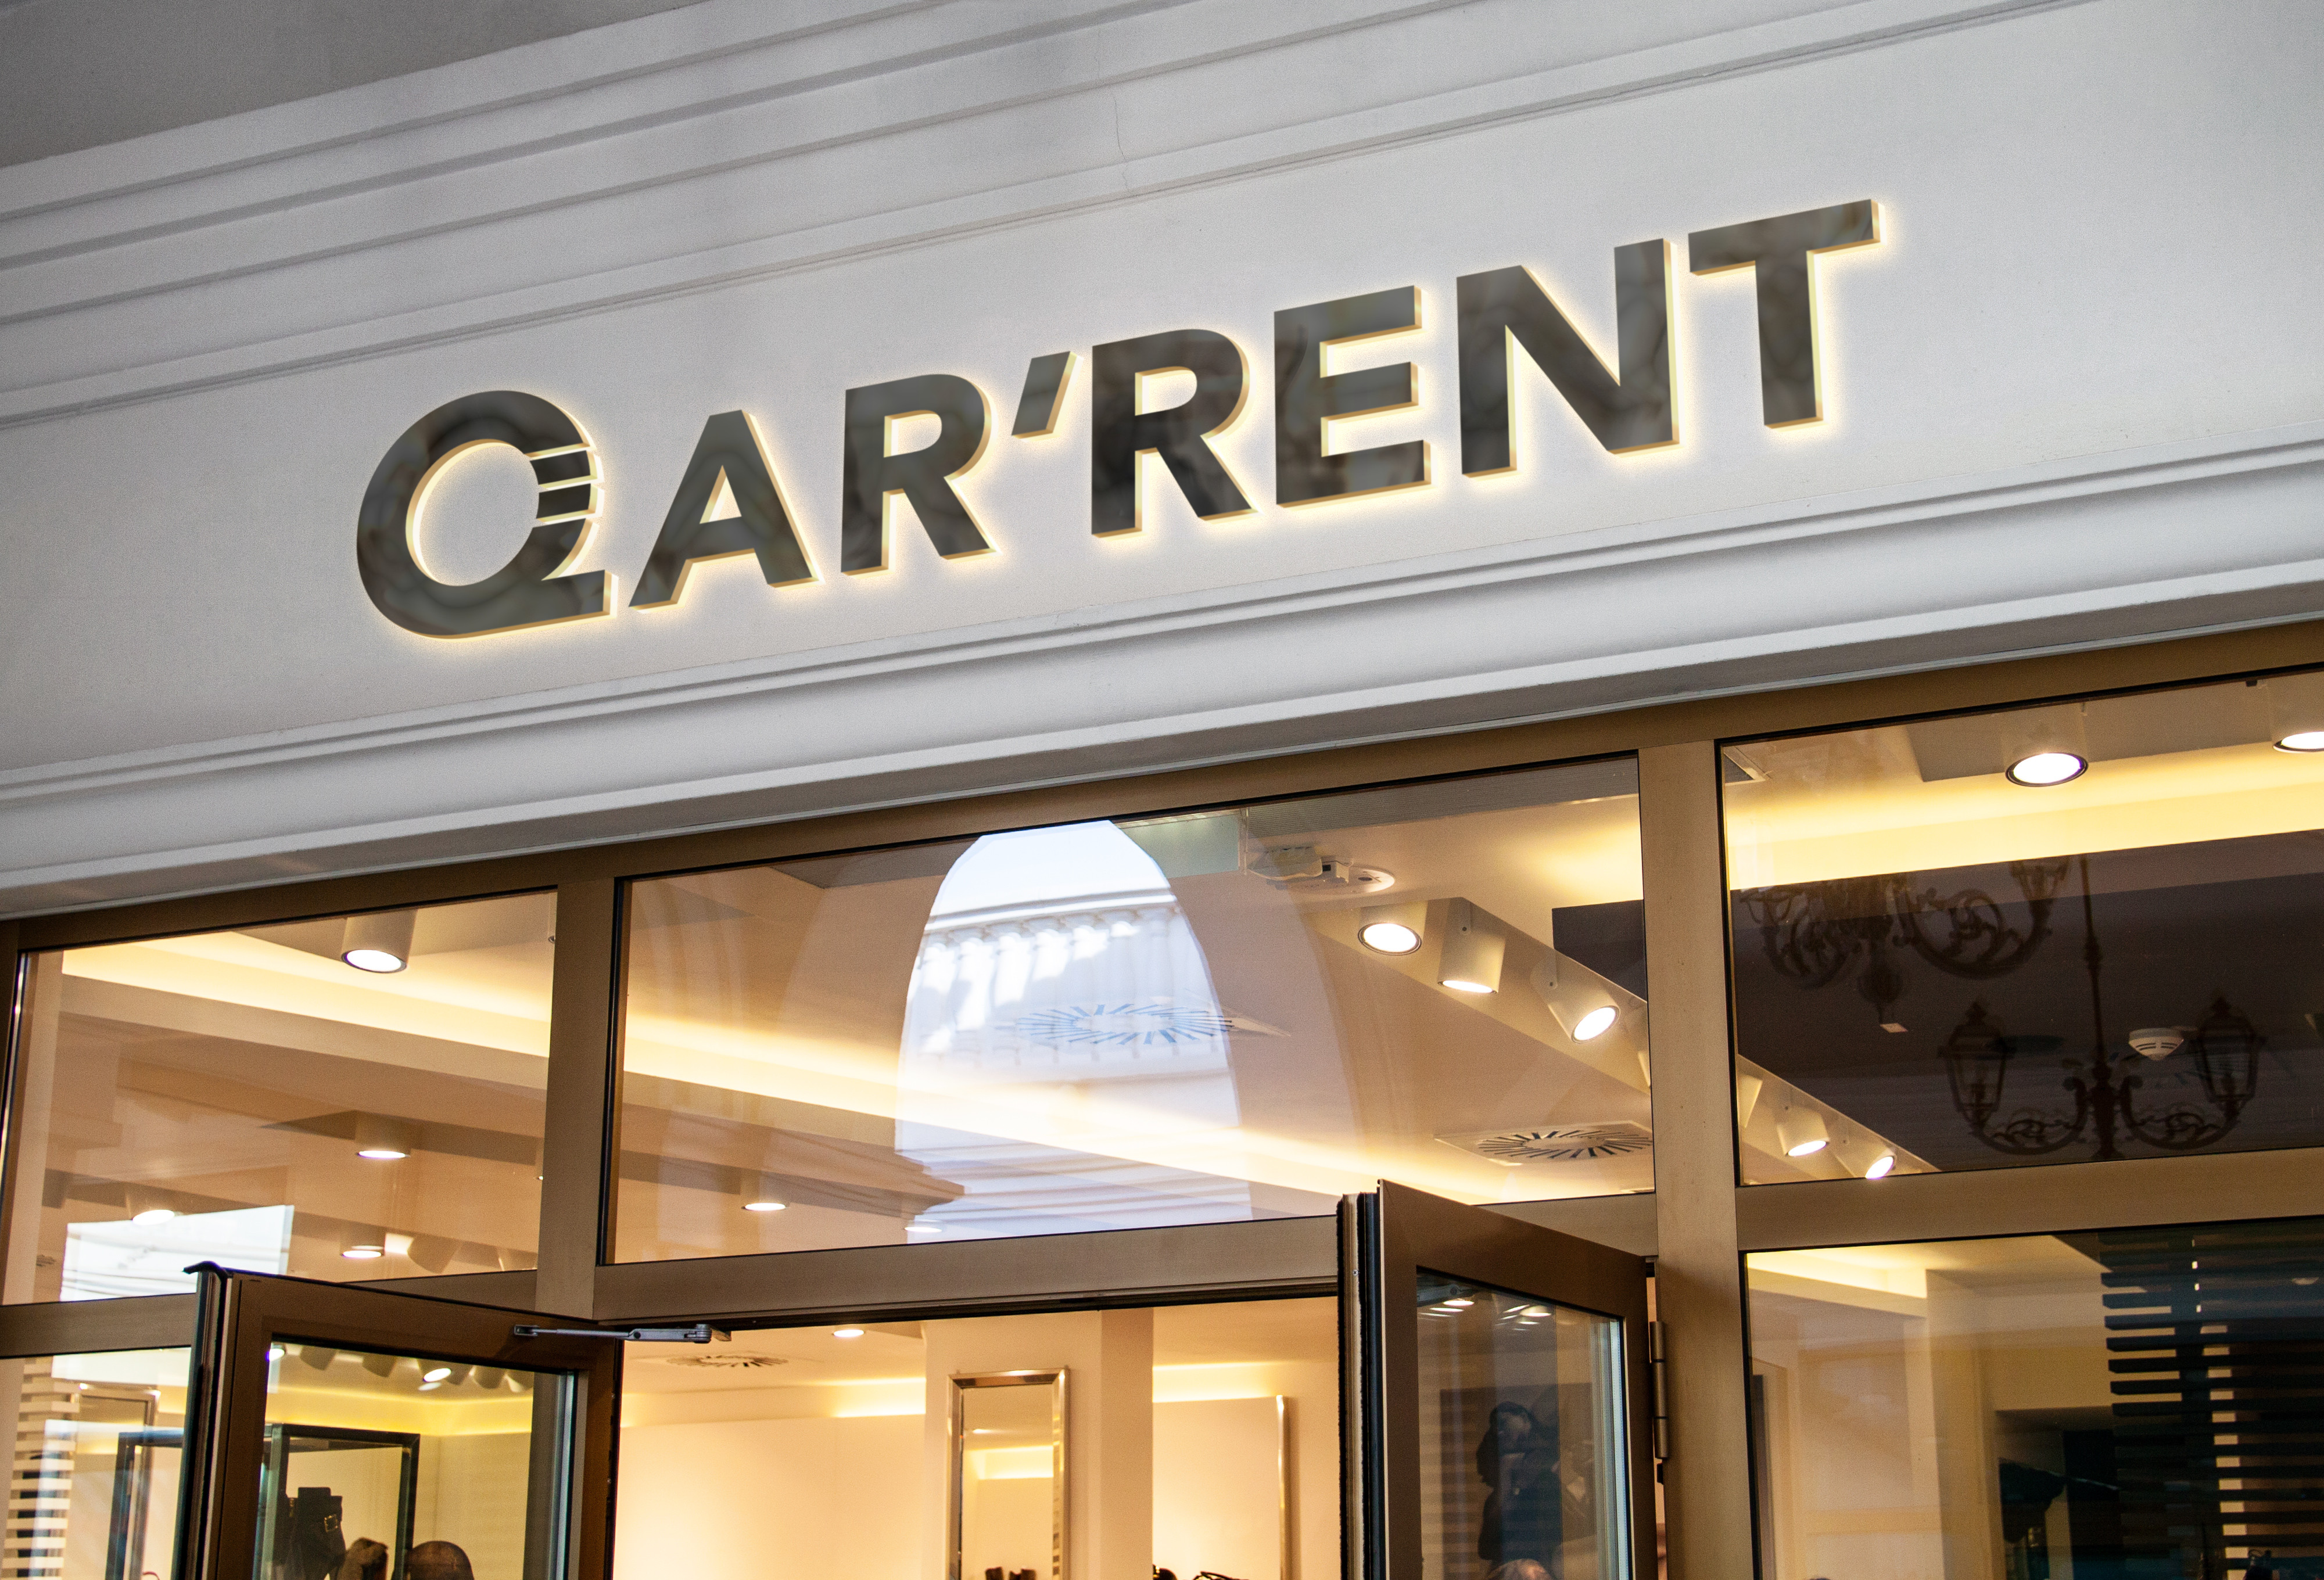 Signalétique du magasin Qar'rent crée par Concepting, agence Webmarketing à Paris